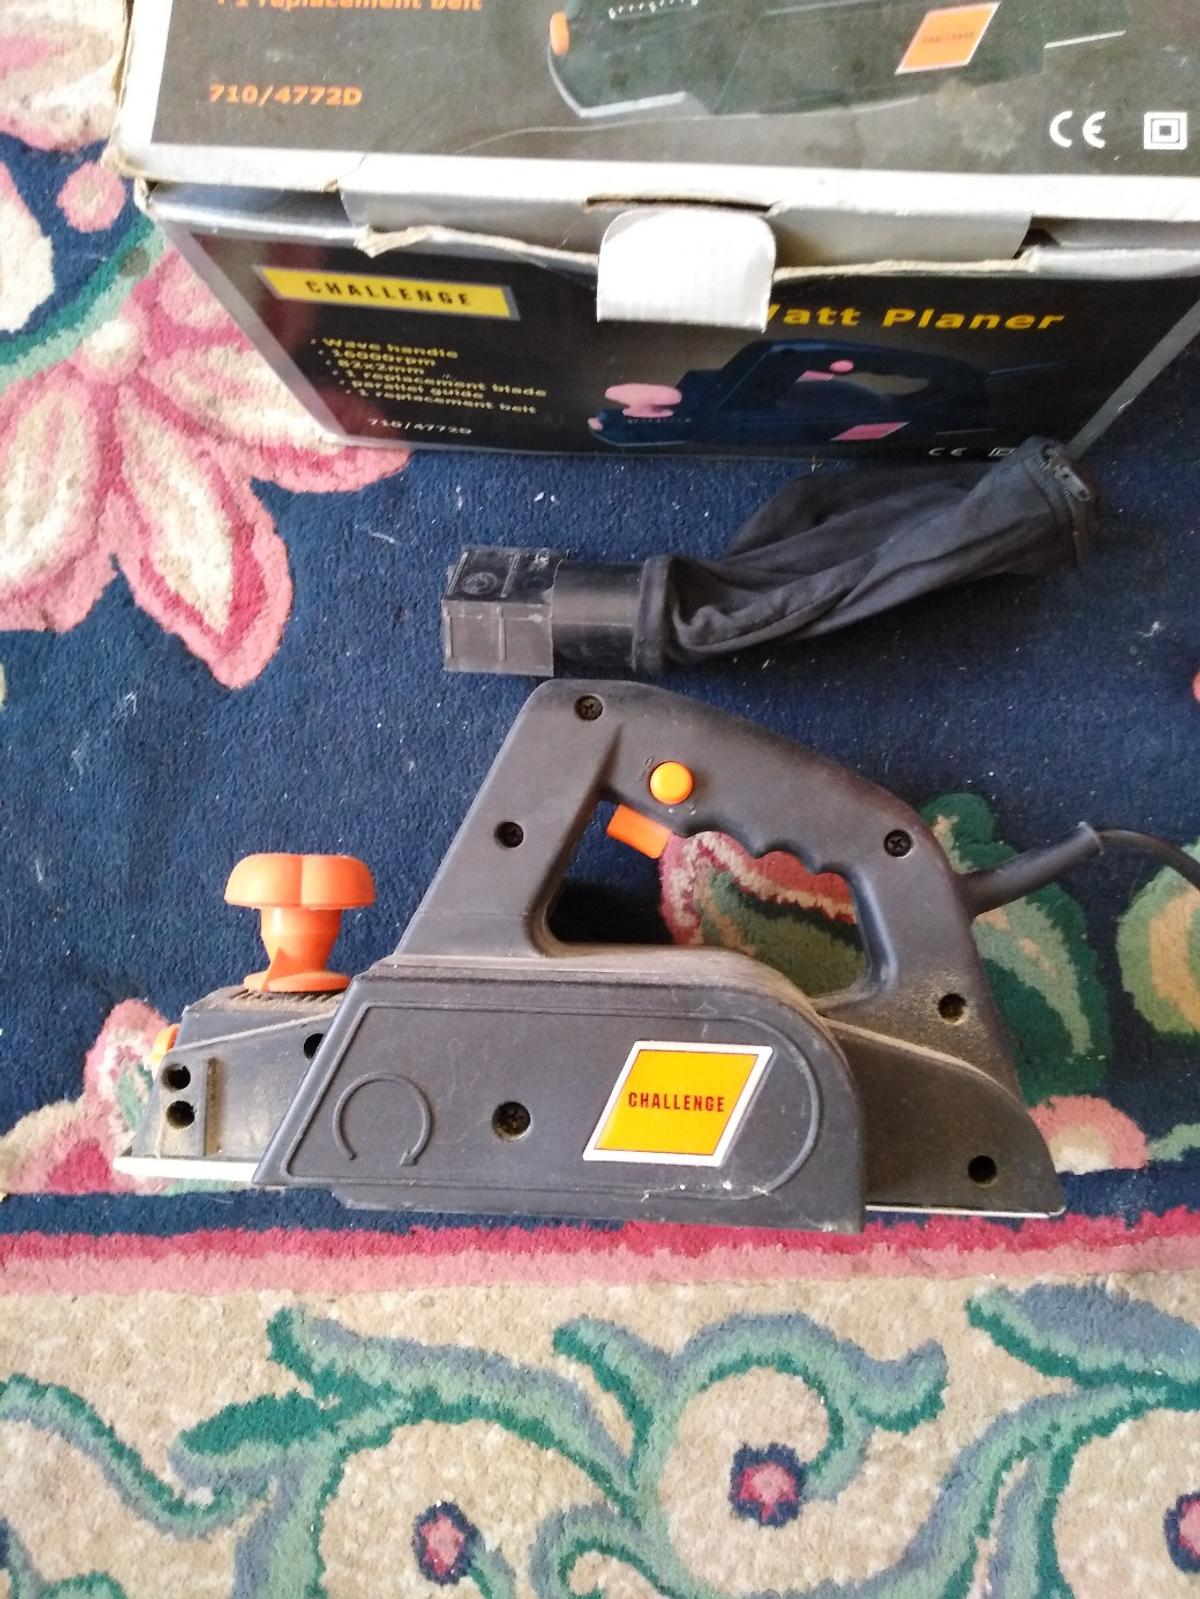 Challenge 600w electric planer used complete with box and dust bag